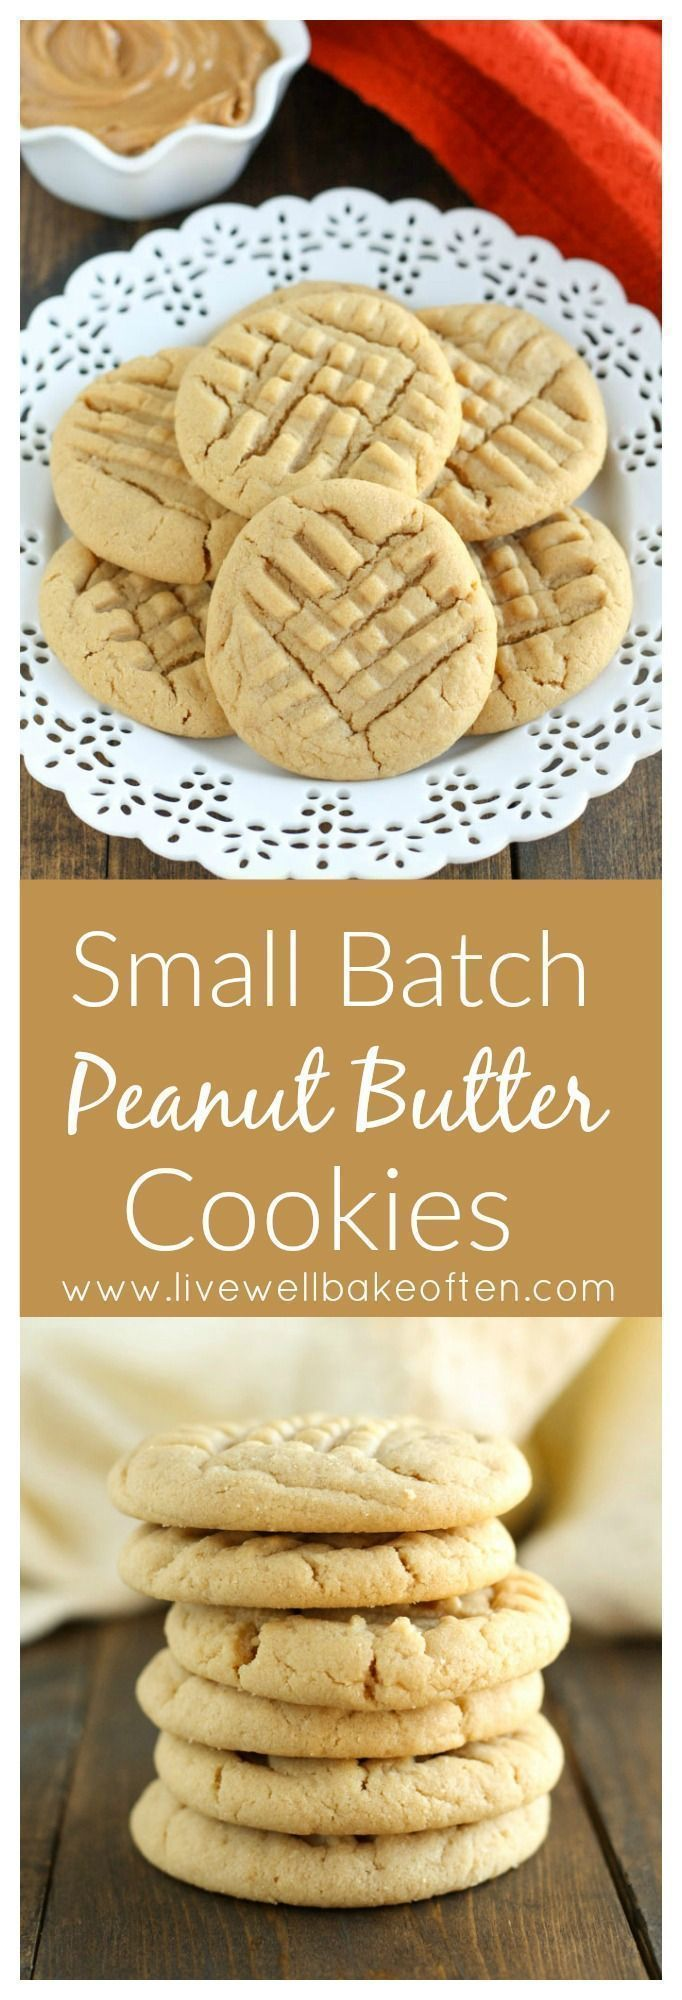 Do you ever make small batch desserts? If there are just one or two people, small batch desserts are just the right thing for you! This easy Small Batch Peanut Butter Cookie recipe is perfect and requires just one bowl! The recipe only makes 6-7 cookies and they're done in just 30 minutes!